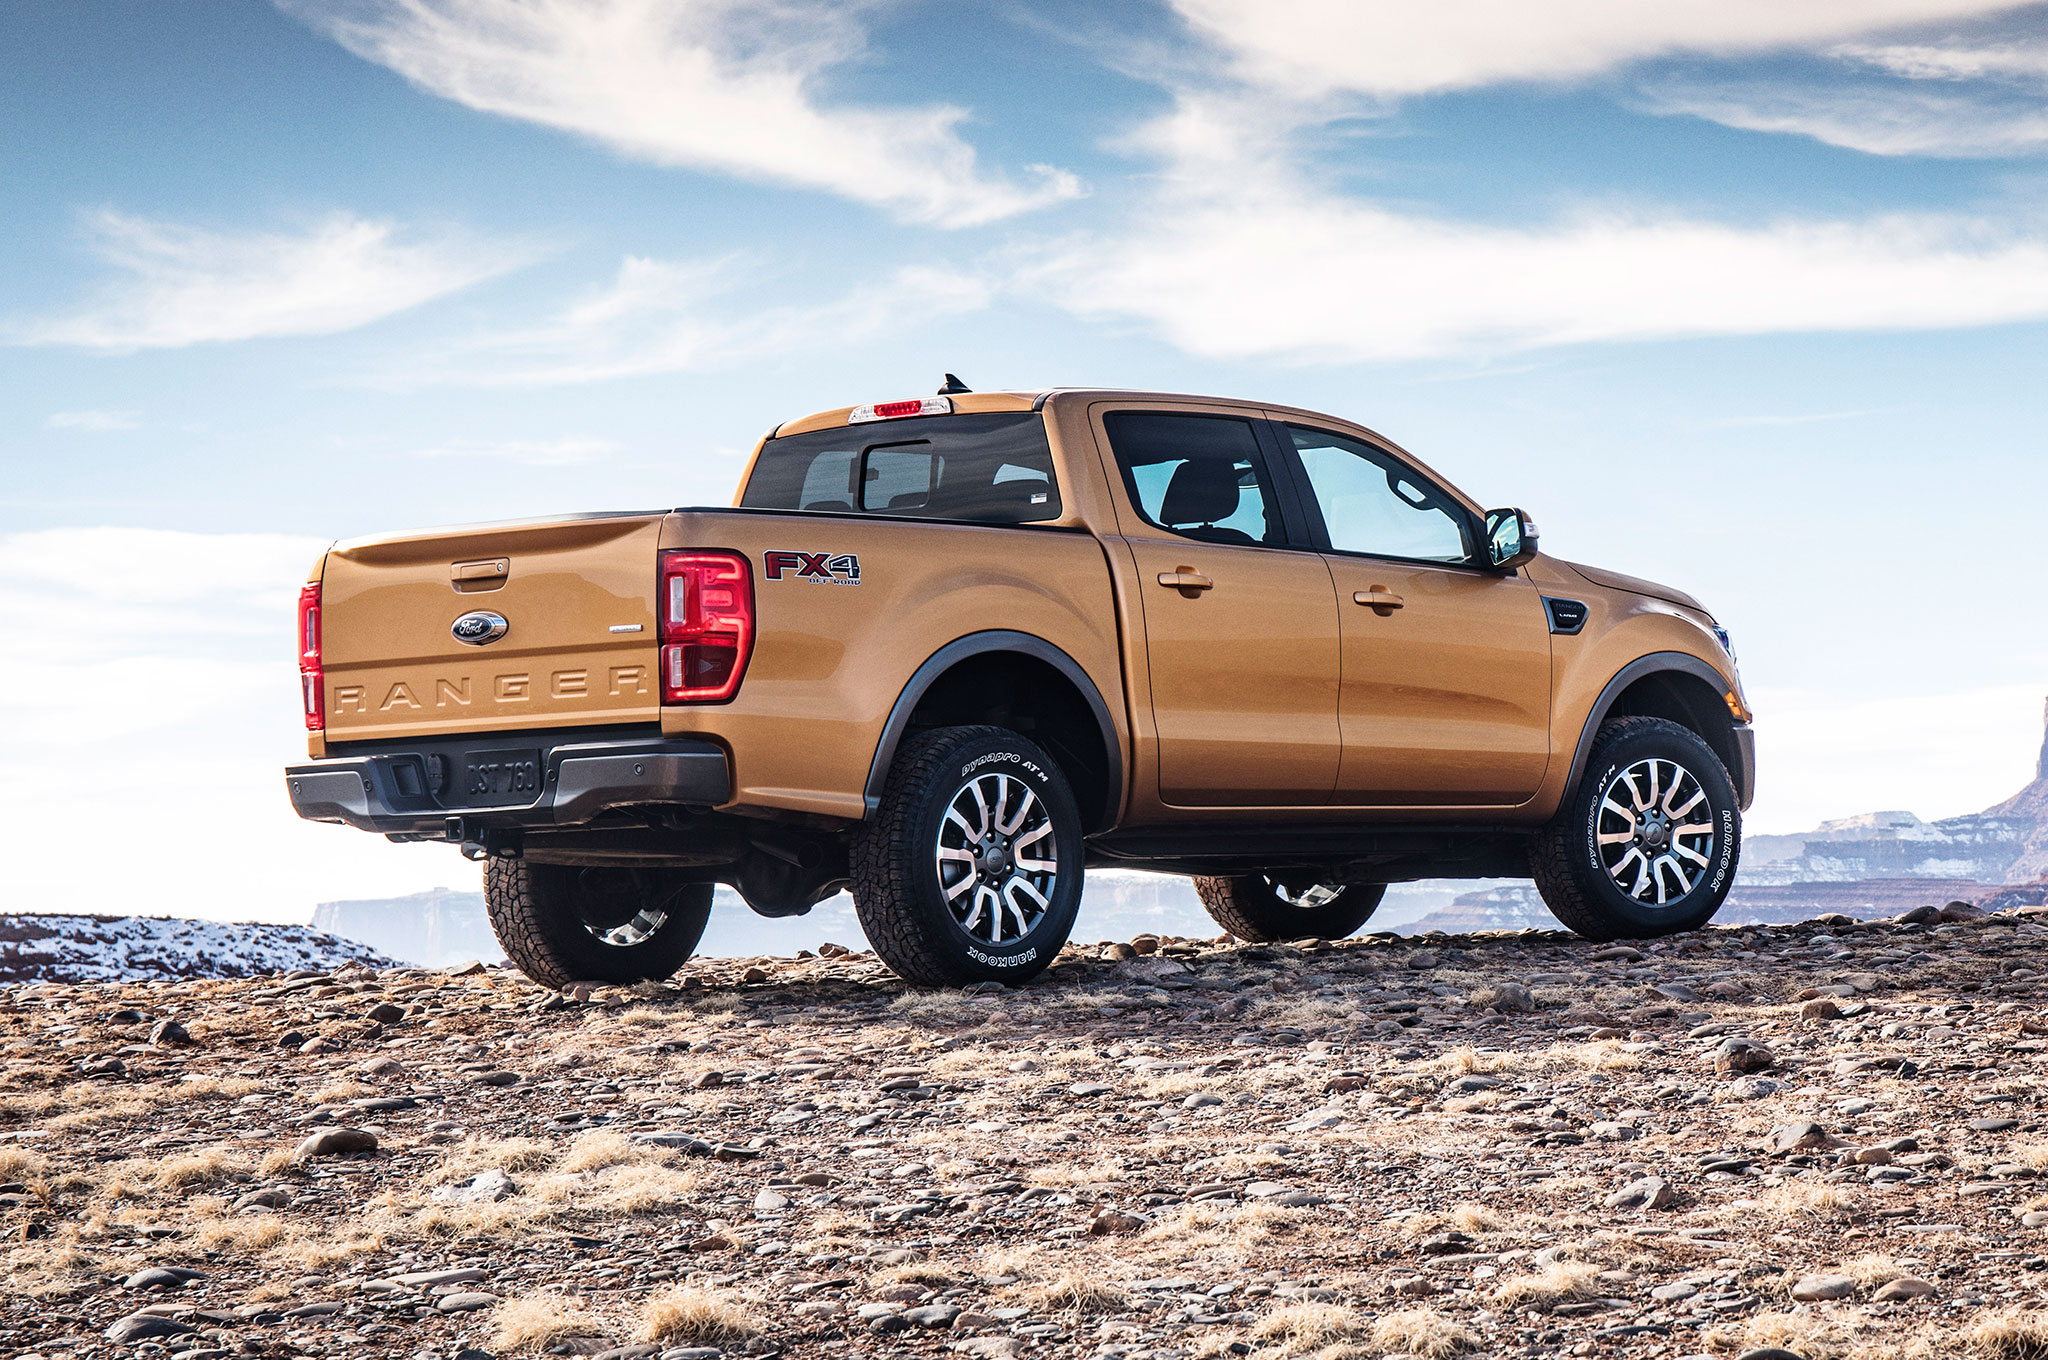 2019 Ford Ranger Rear Side View On Rocky Hill